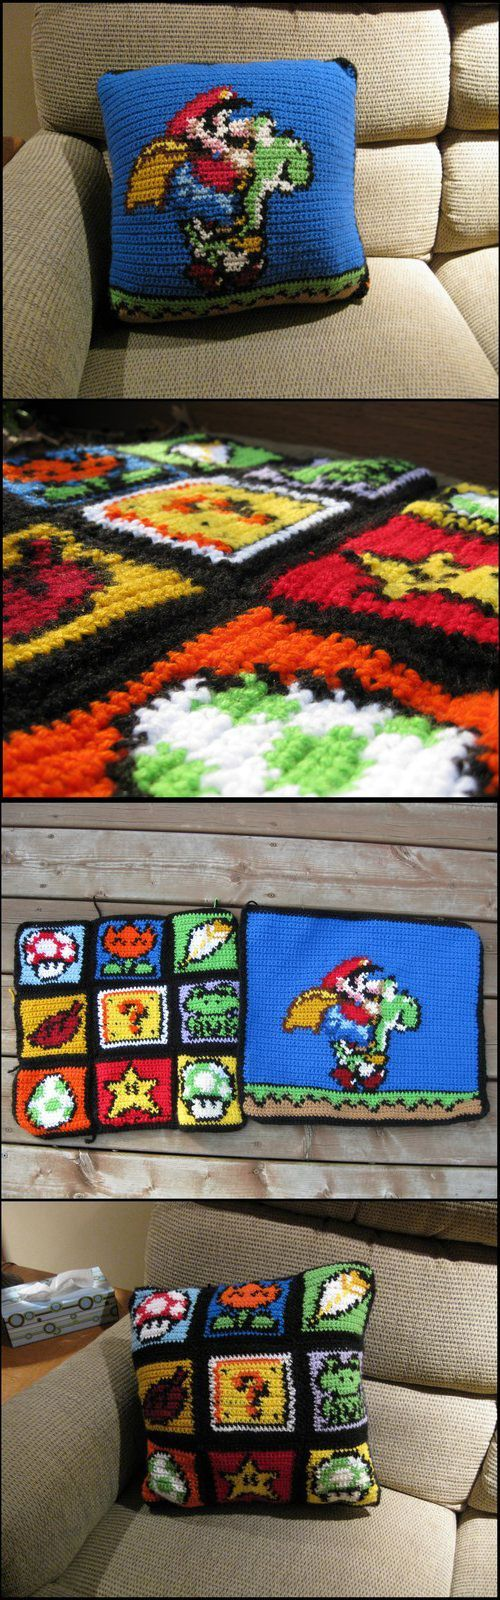 Rtakeshi Crocheted This Awesome Doublesided Pillow It's For Sale If  You Can Afford It! :) Via[deviantart]